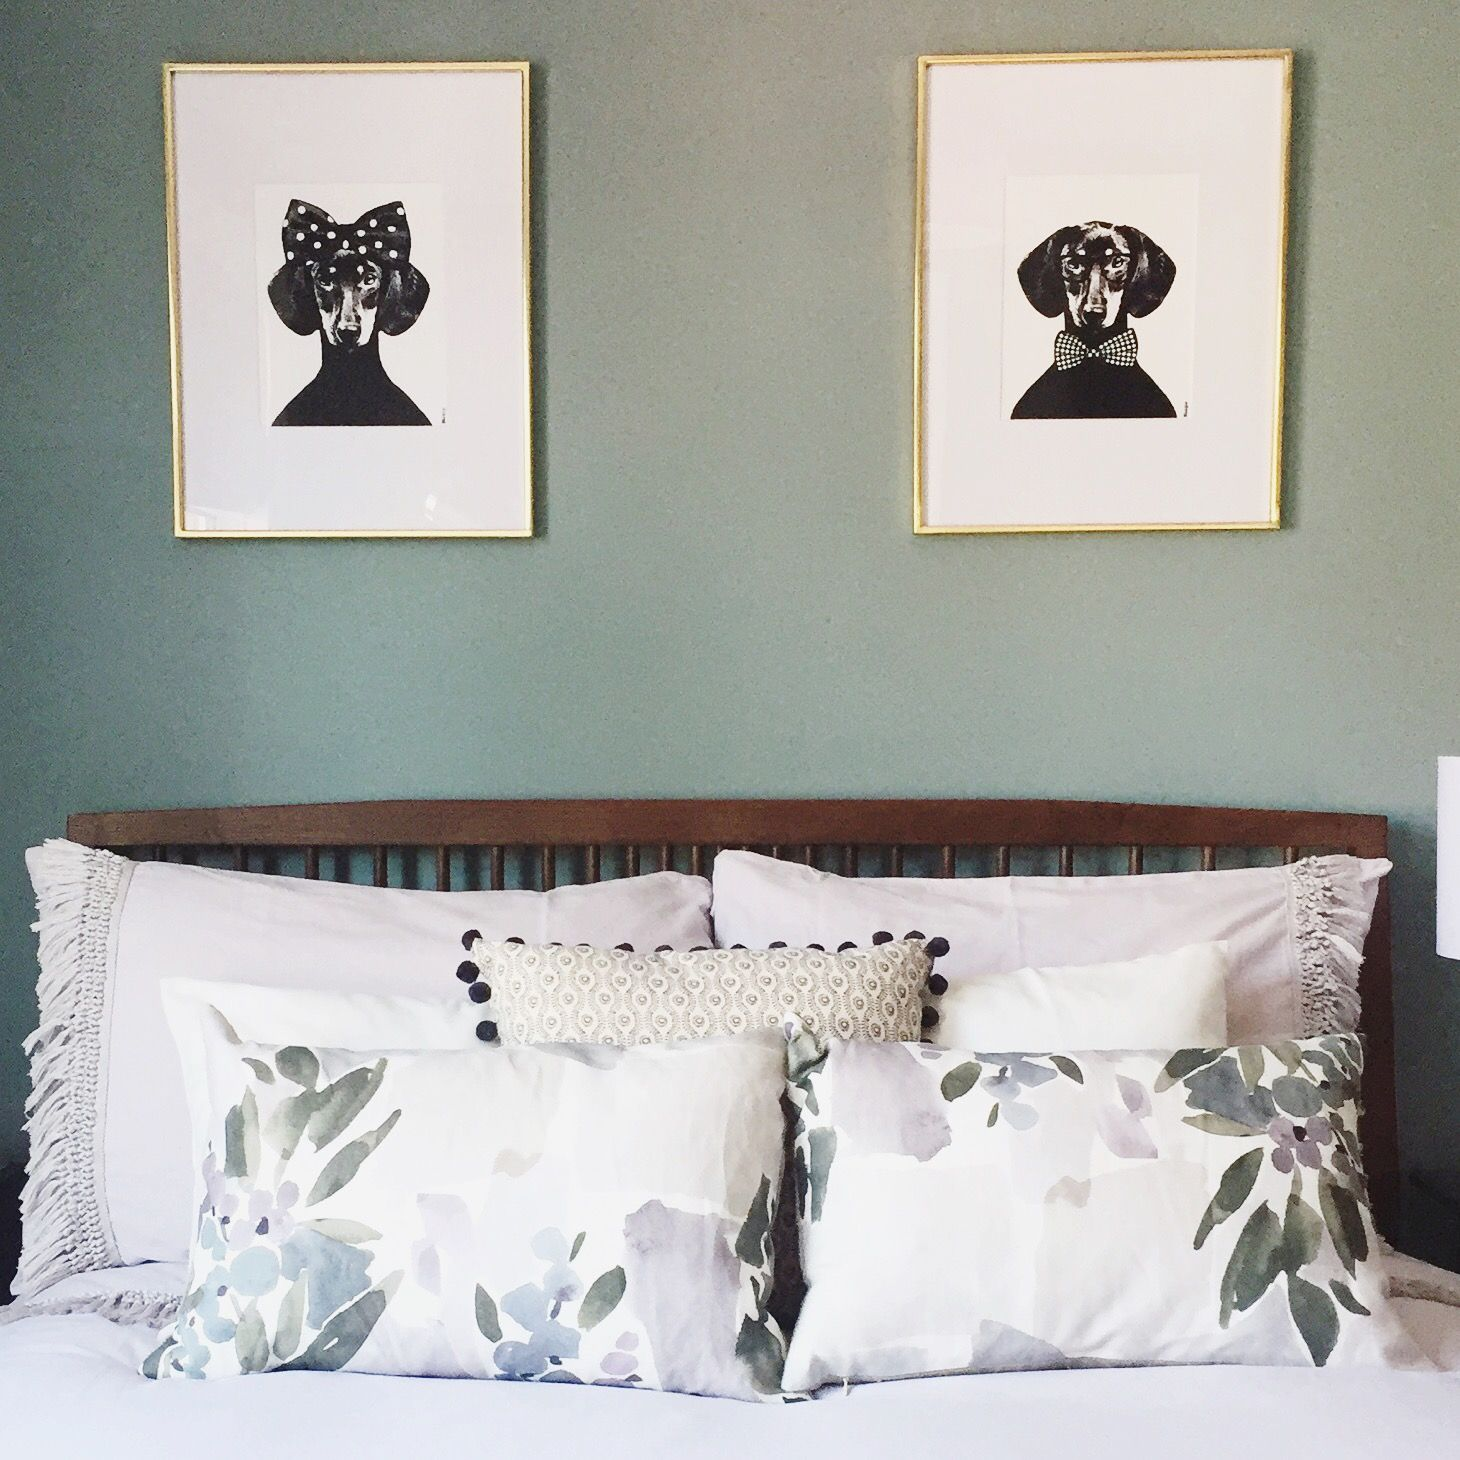 His and hers artwork above the bed in this pale teal